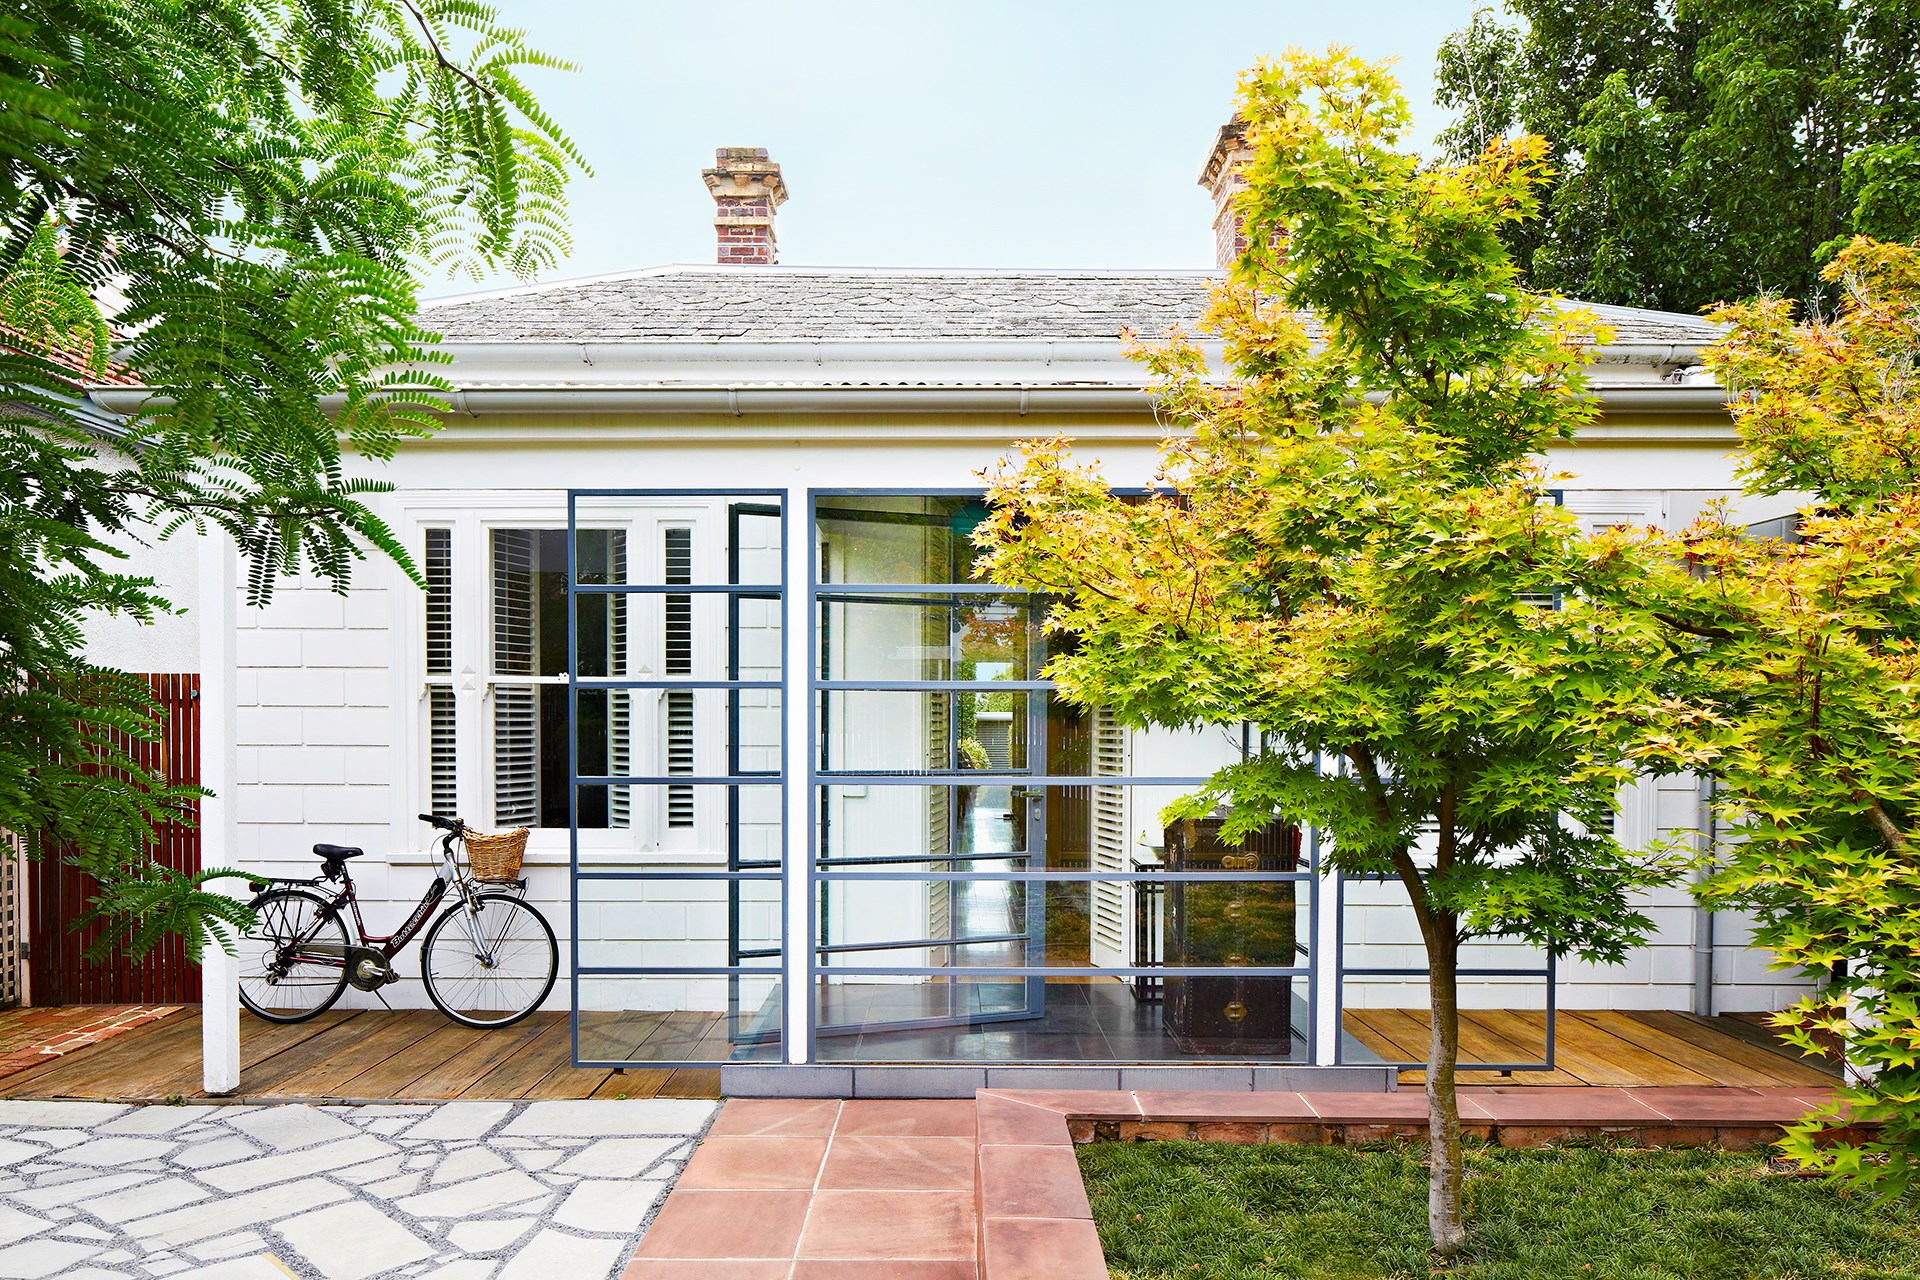 A glass-walled entryway is an intriguing addition to this Victorian-era weatherboard. See more of this [surprisingly renovation of a Melbourne home](http://www.homestolove.com.au/jon-and-vanessas-surprising-family-home-with-bonus-office-2271). *Photography: Armelle Habib | Story: Australian House & Garden*